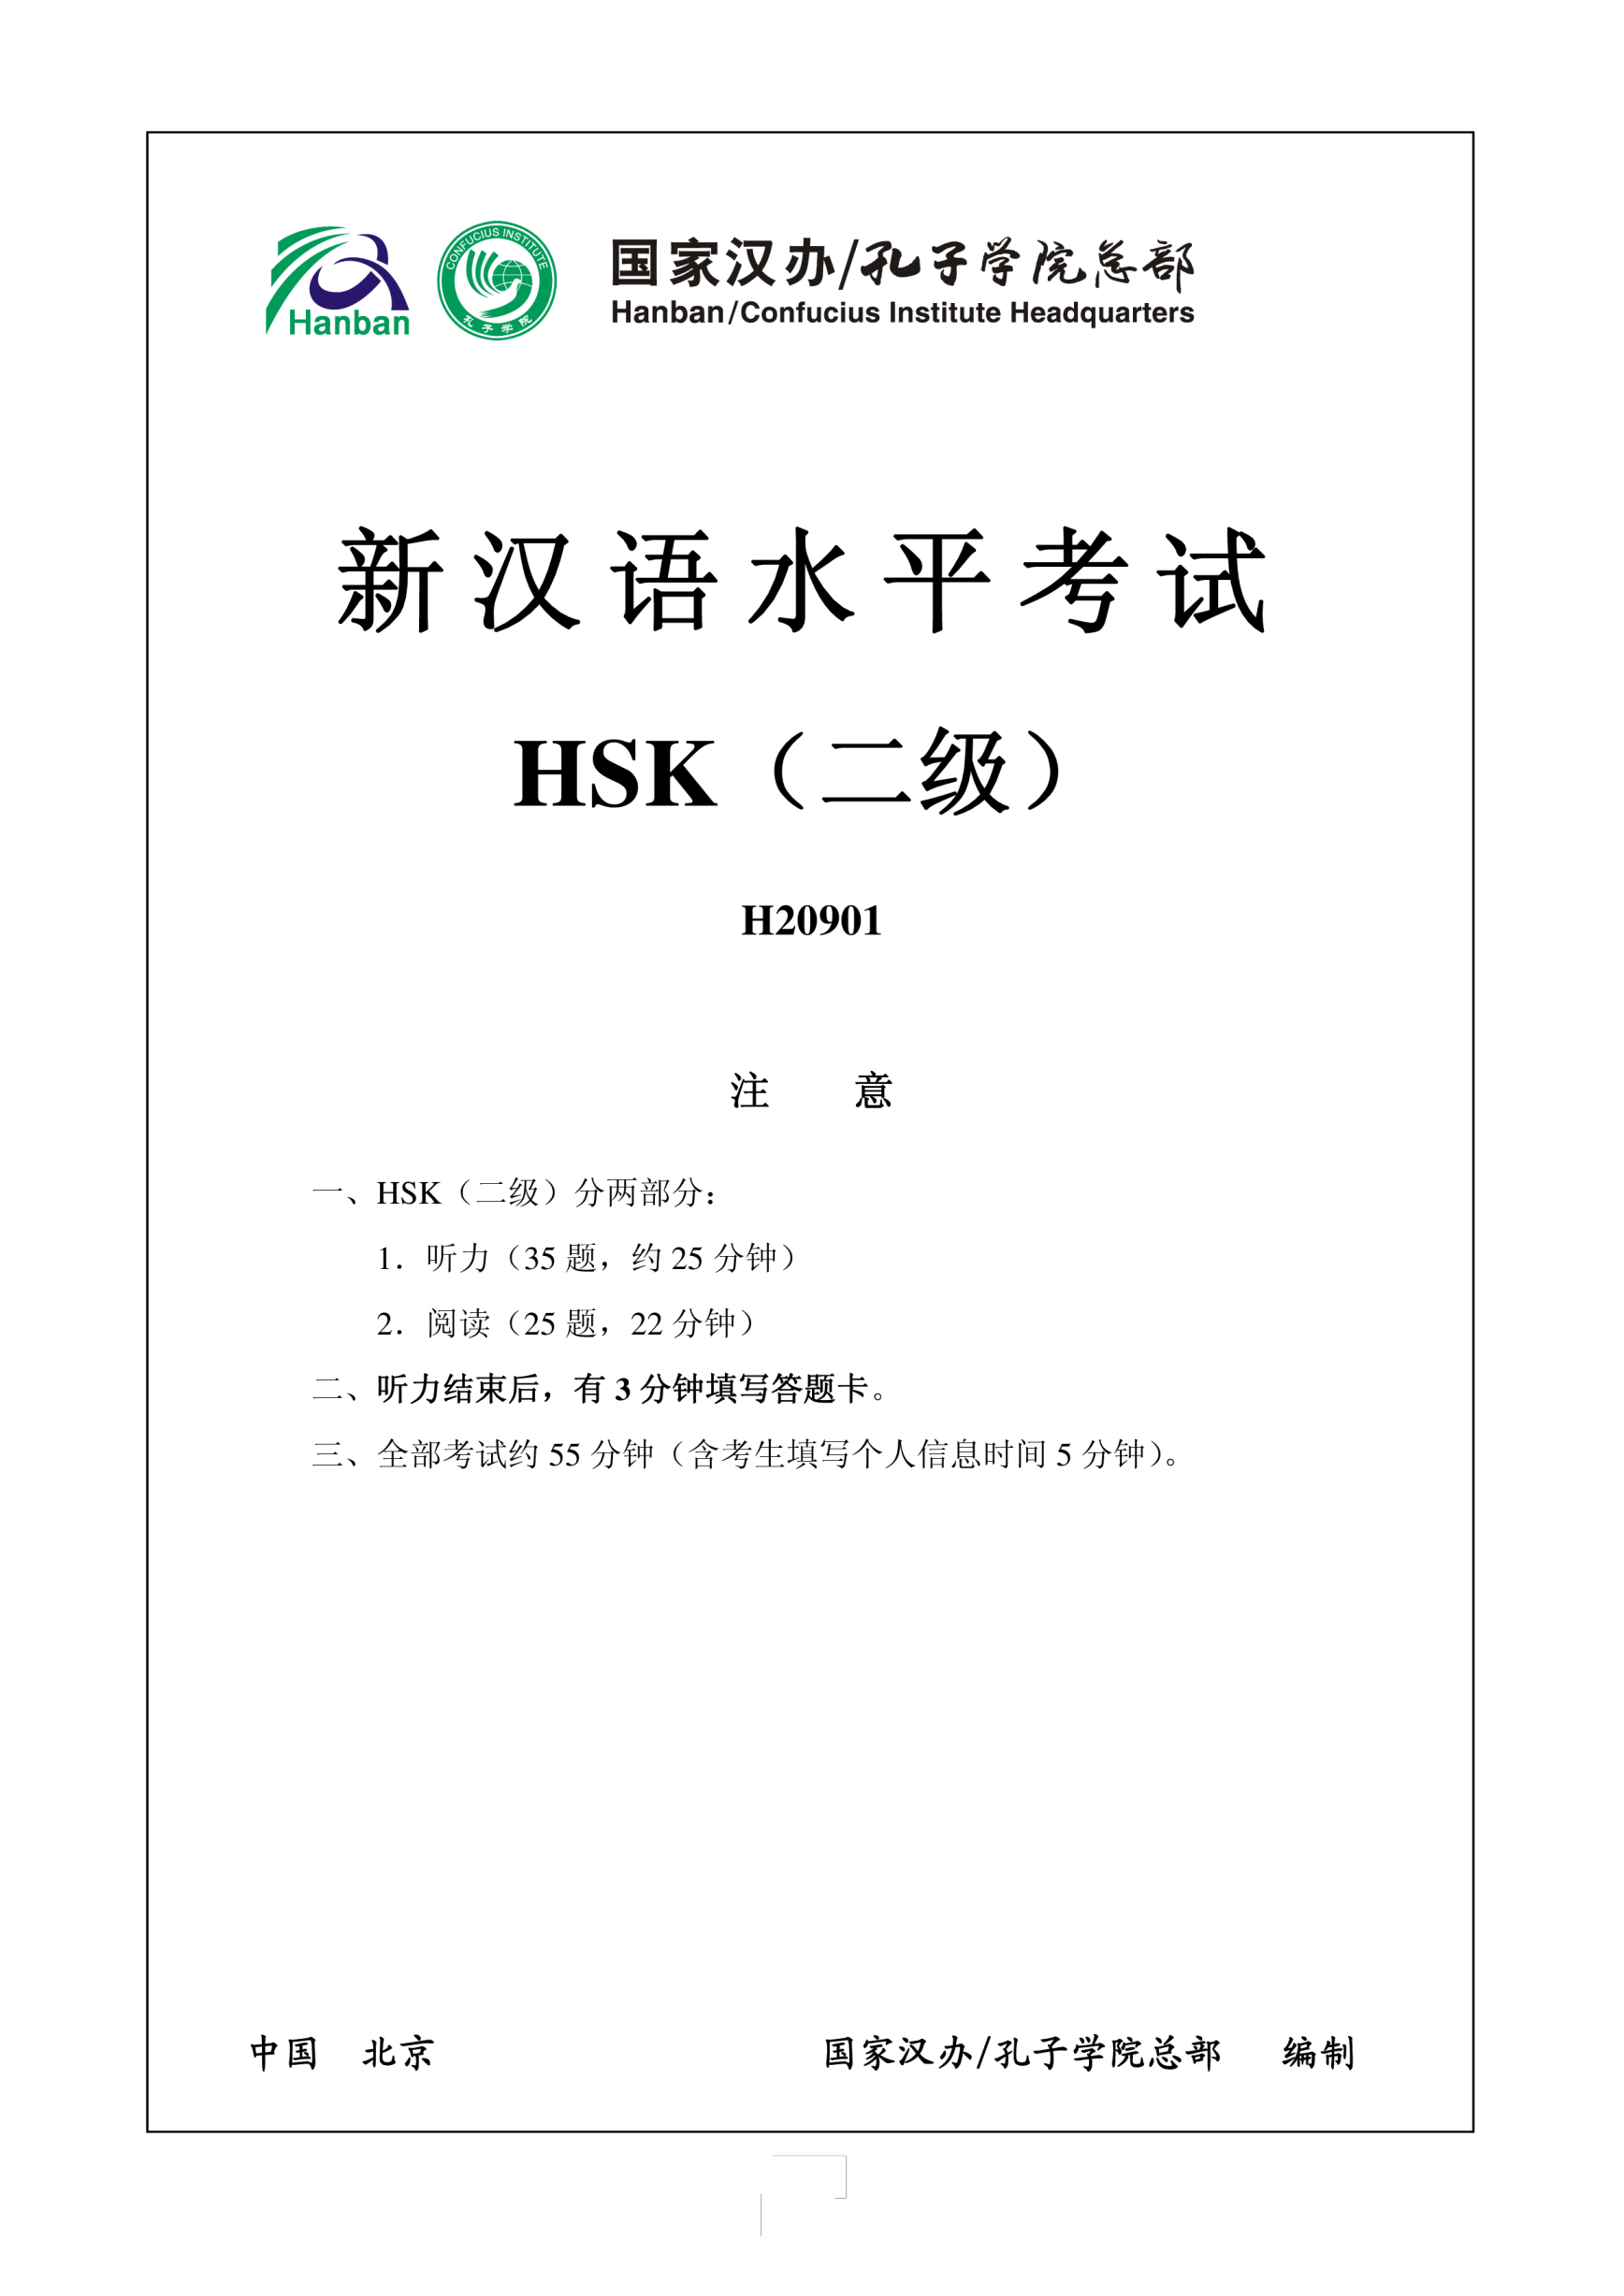 template preview imageHSK2 Chinese Exam including Answers # H20901